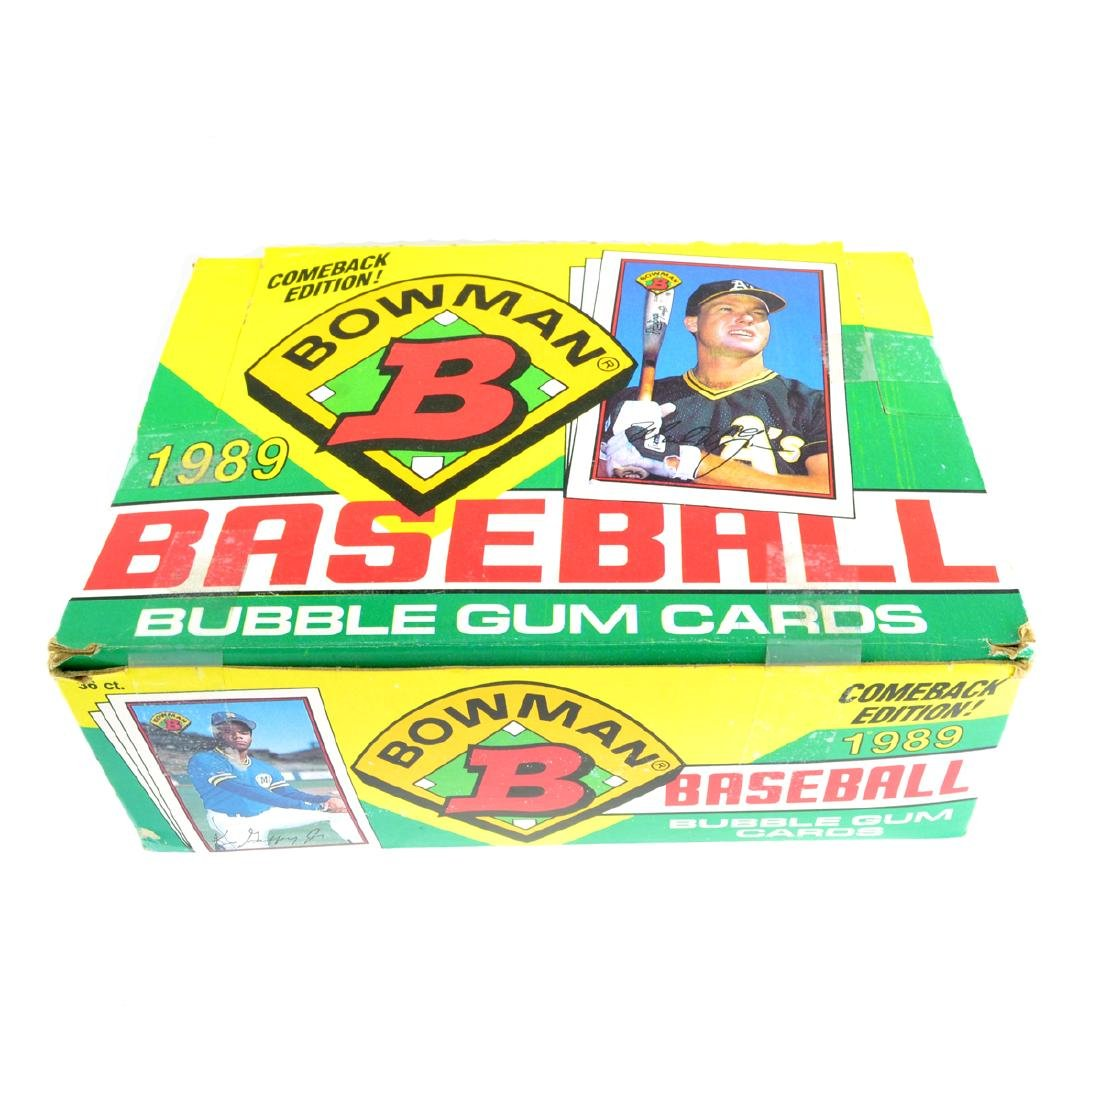 1989 Bowman Comeback Edition Baseball Bubble Gm Card